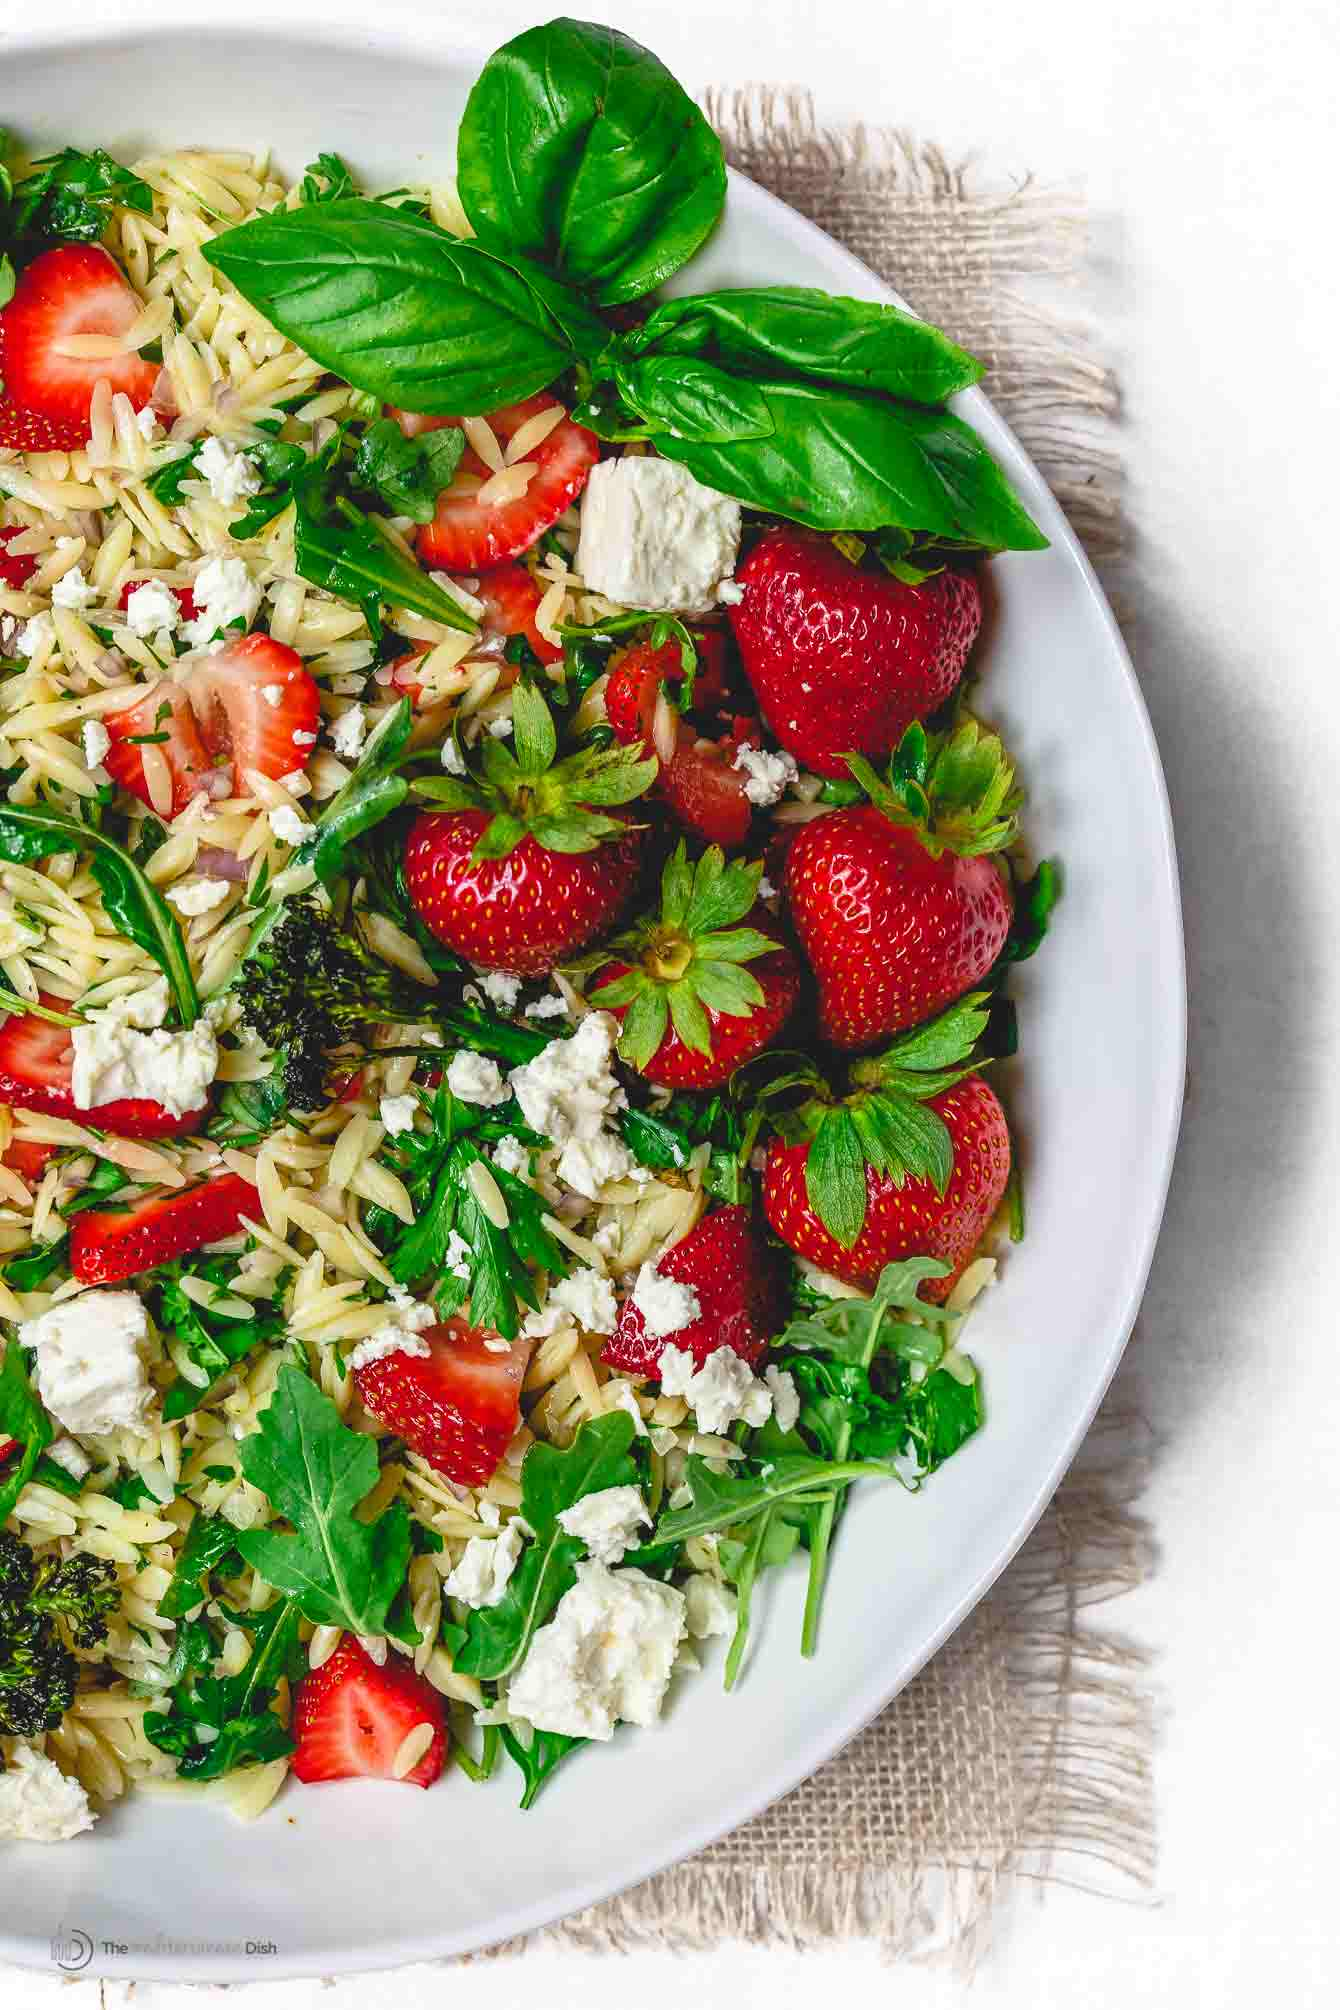 Orzo salad with strawberries and feta cheese